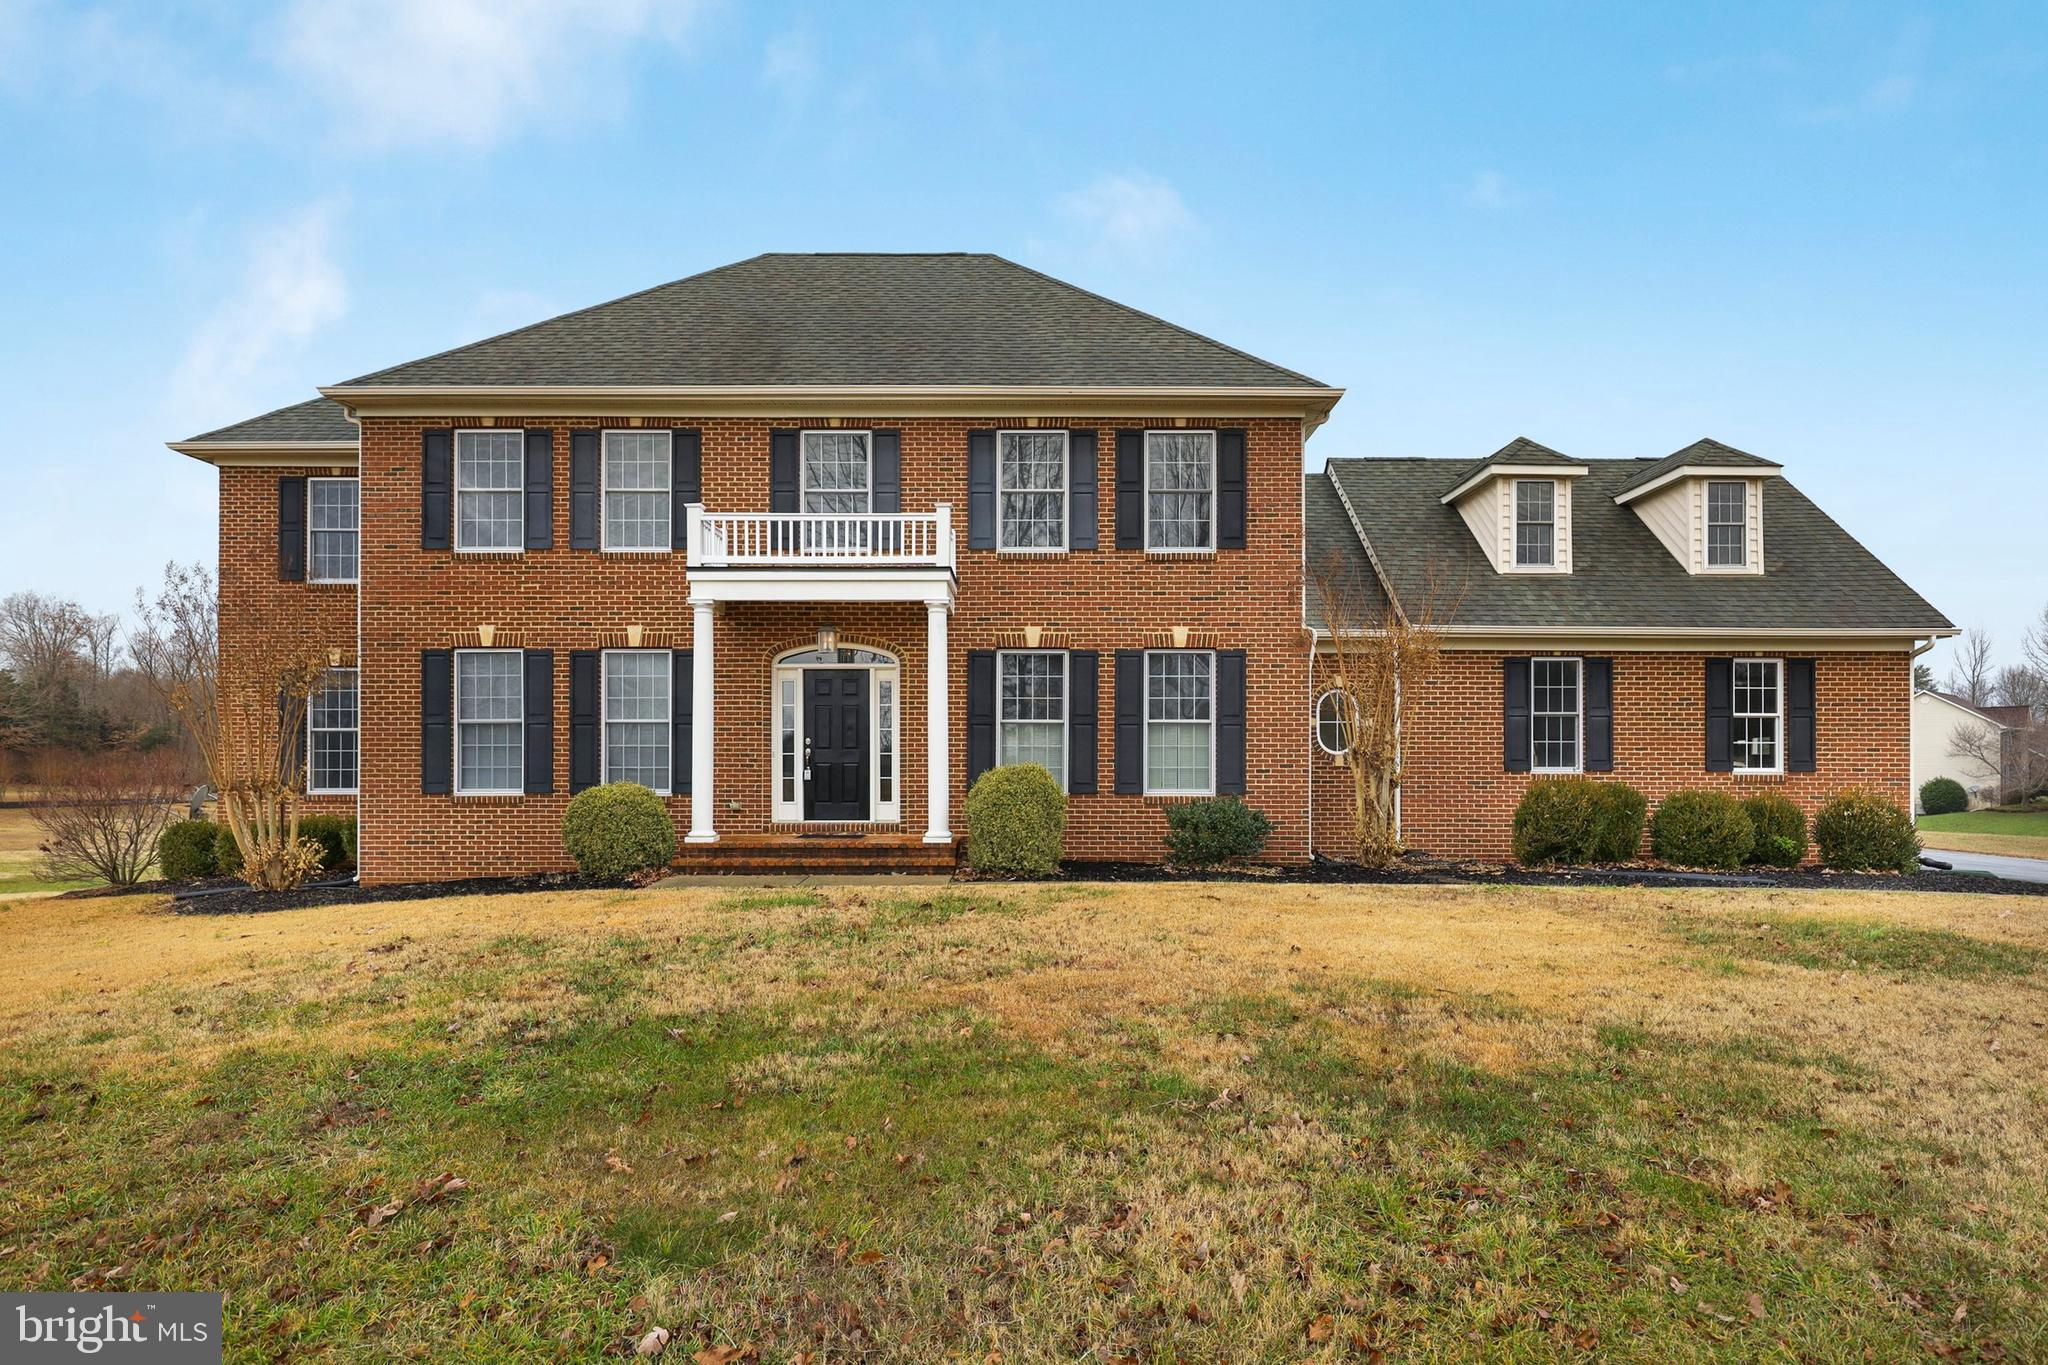 6745 PALE MORNING COURT, HUGHESVILLE, MD 20637